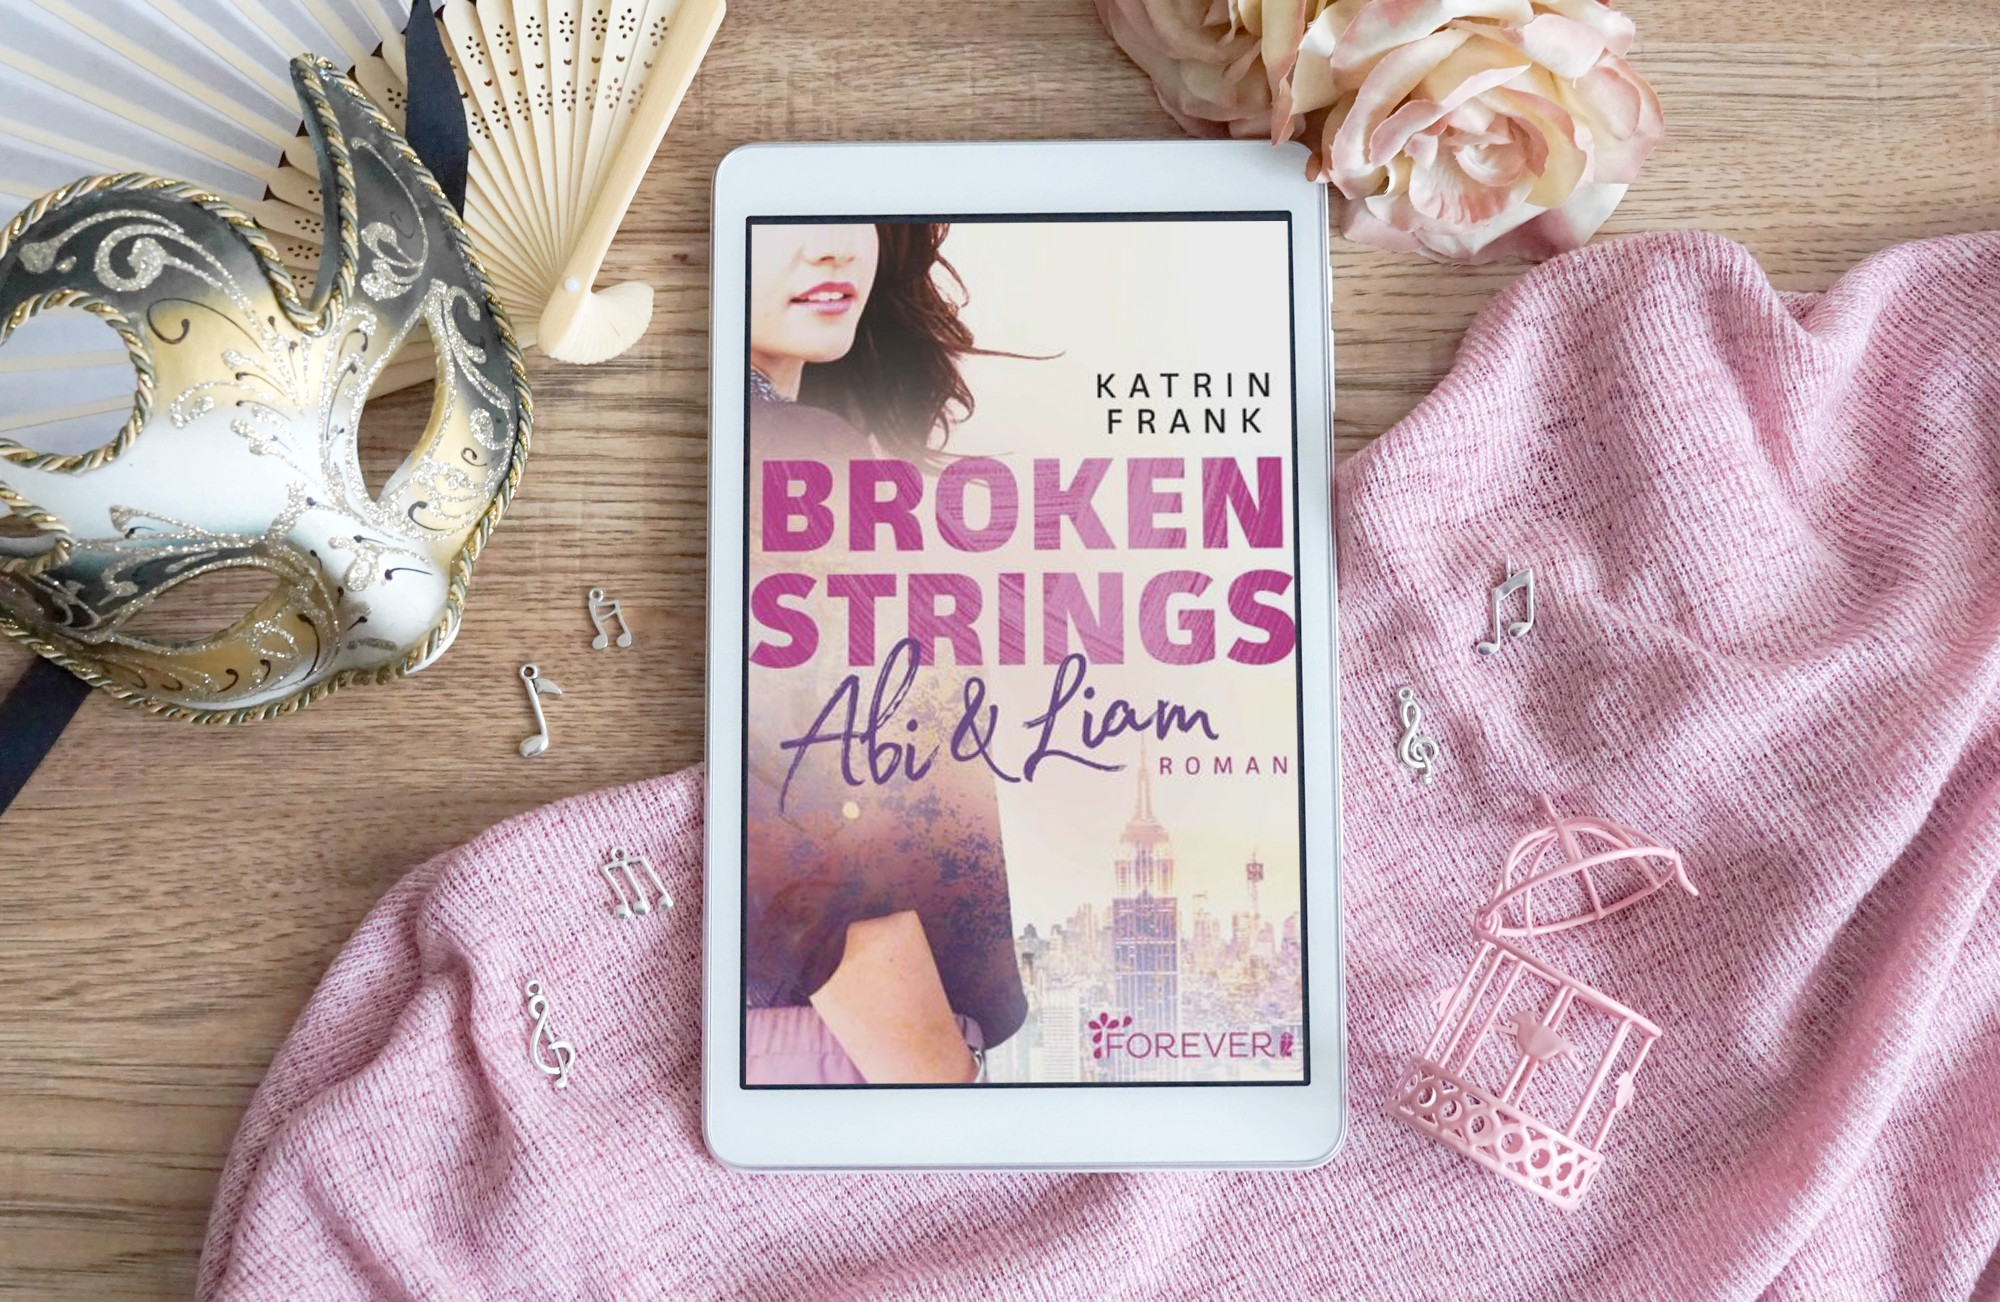 Broken Strings – Katrin Frank graphic